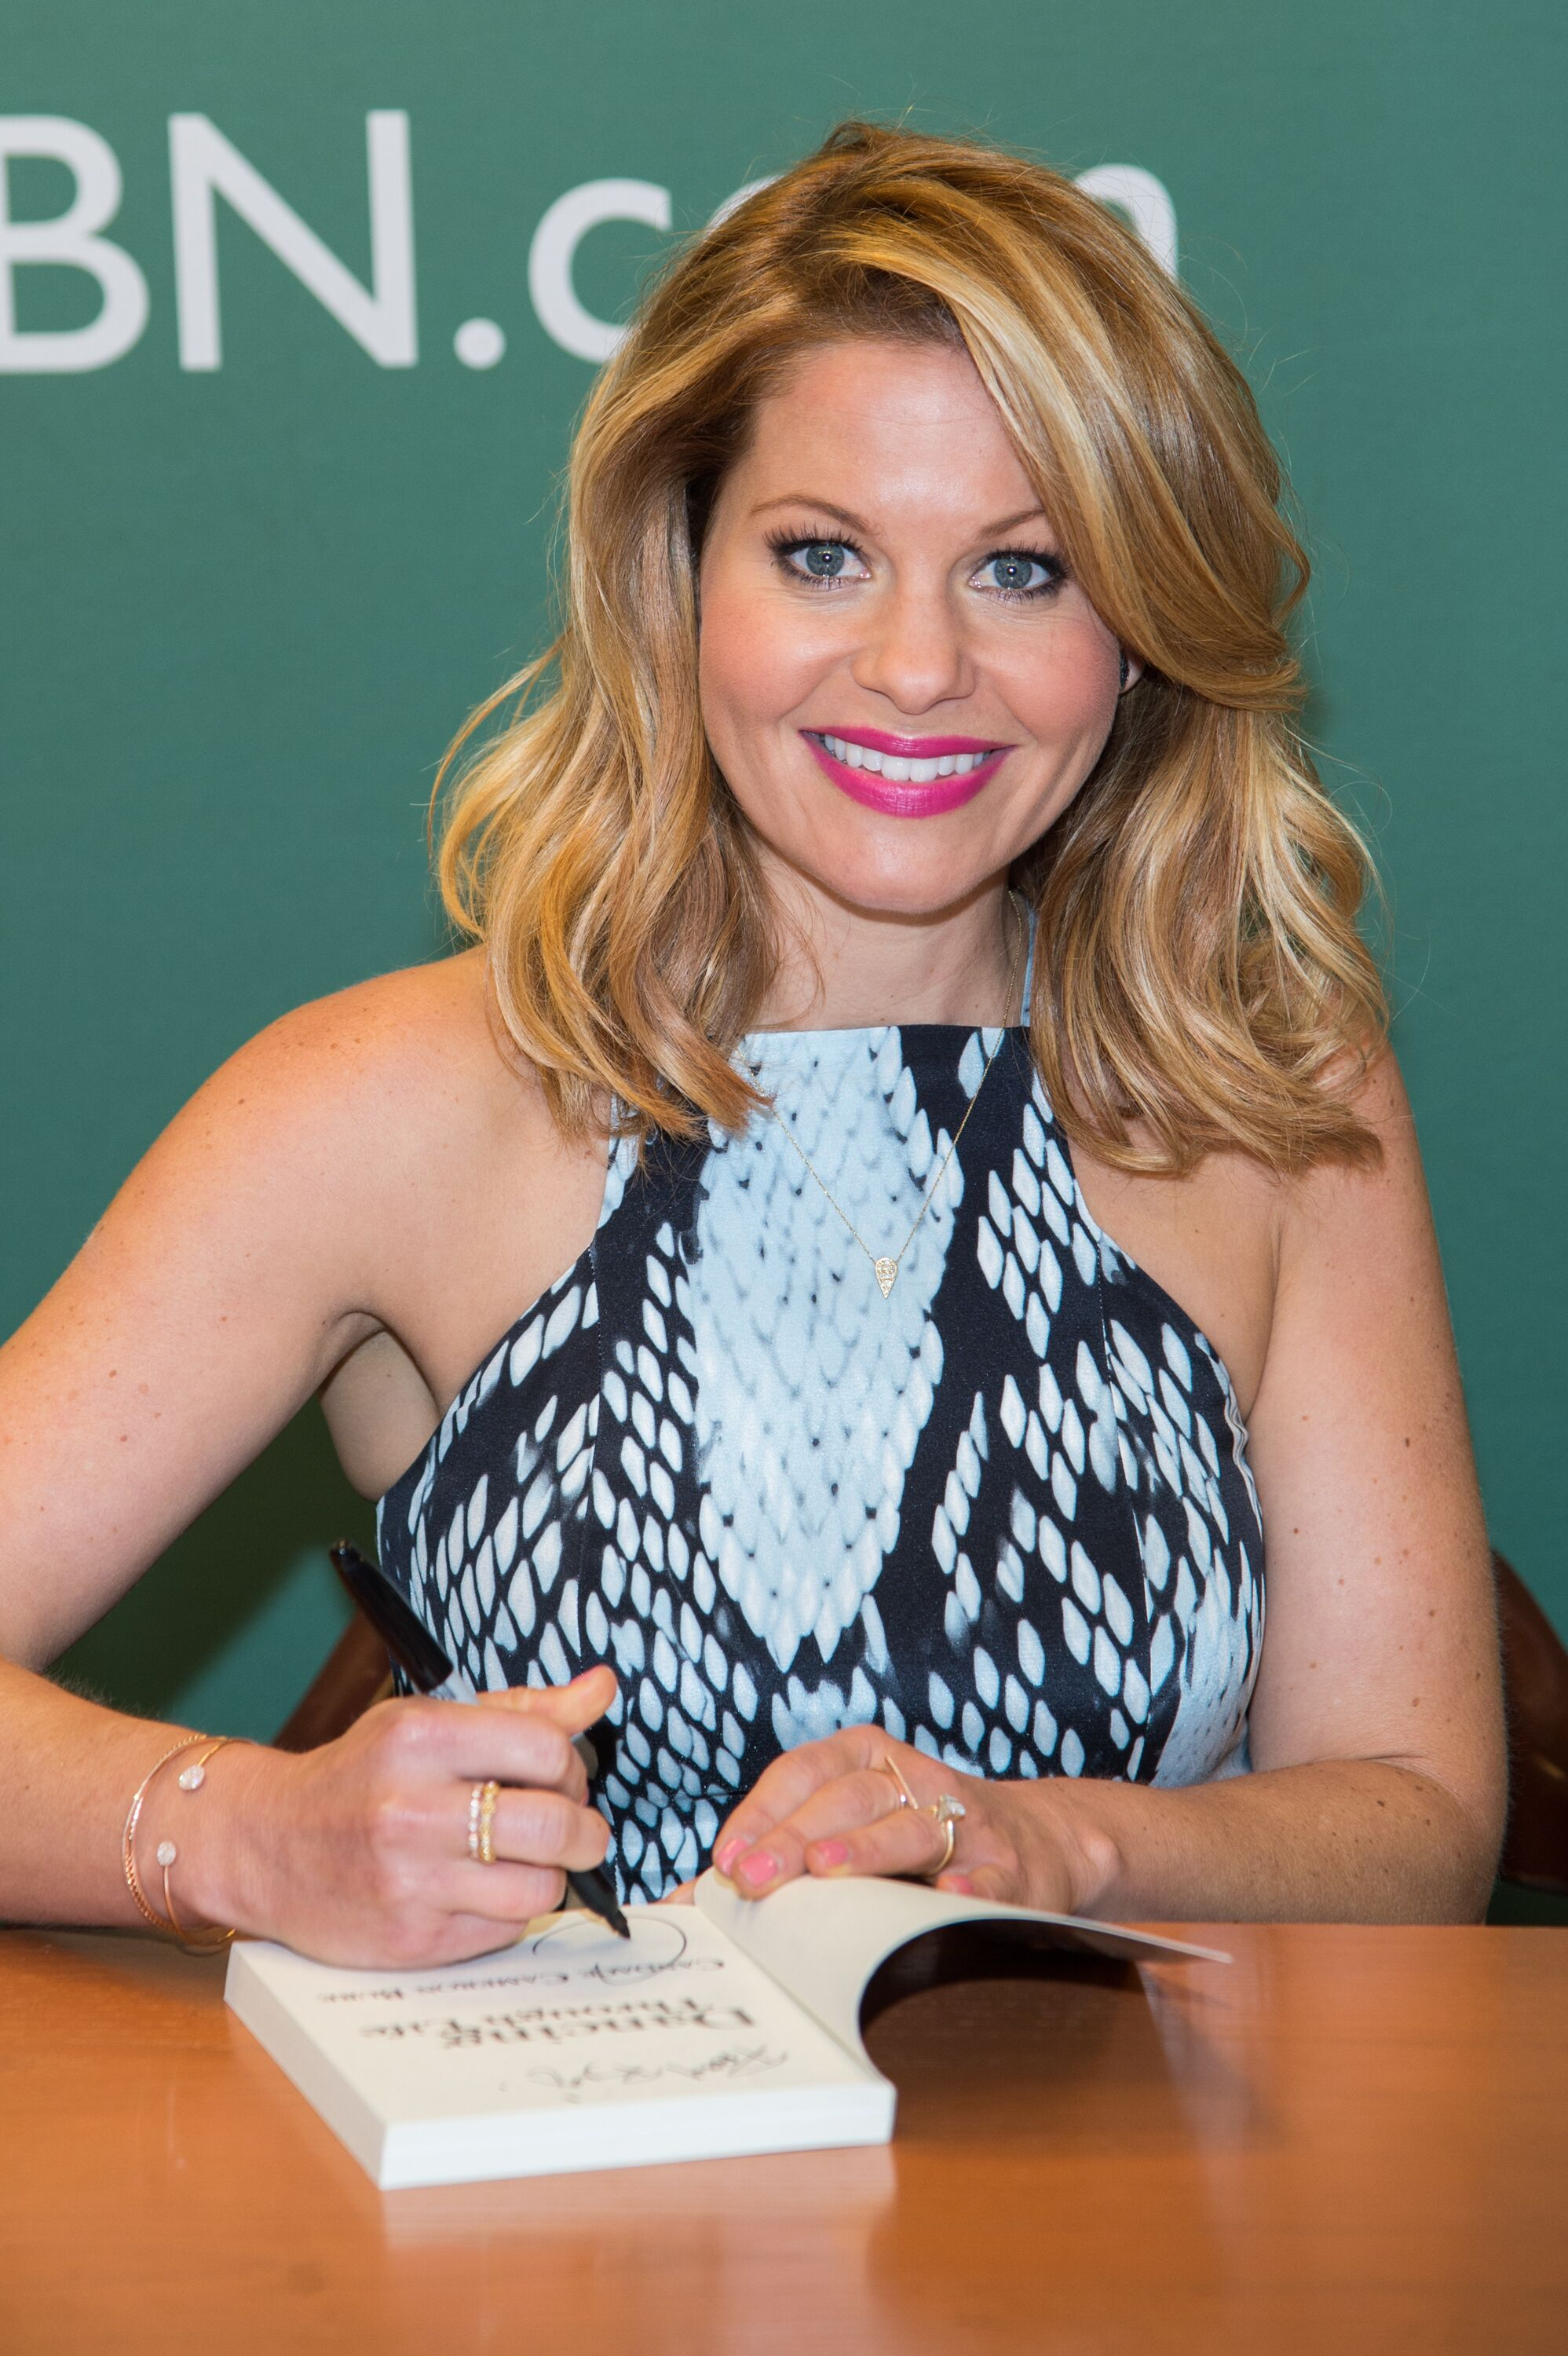 Candace Cameron Bure at her book promotion. | Source: Getty Images